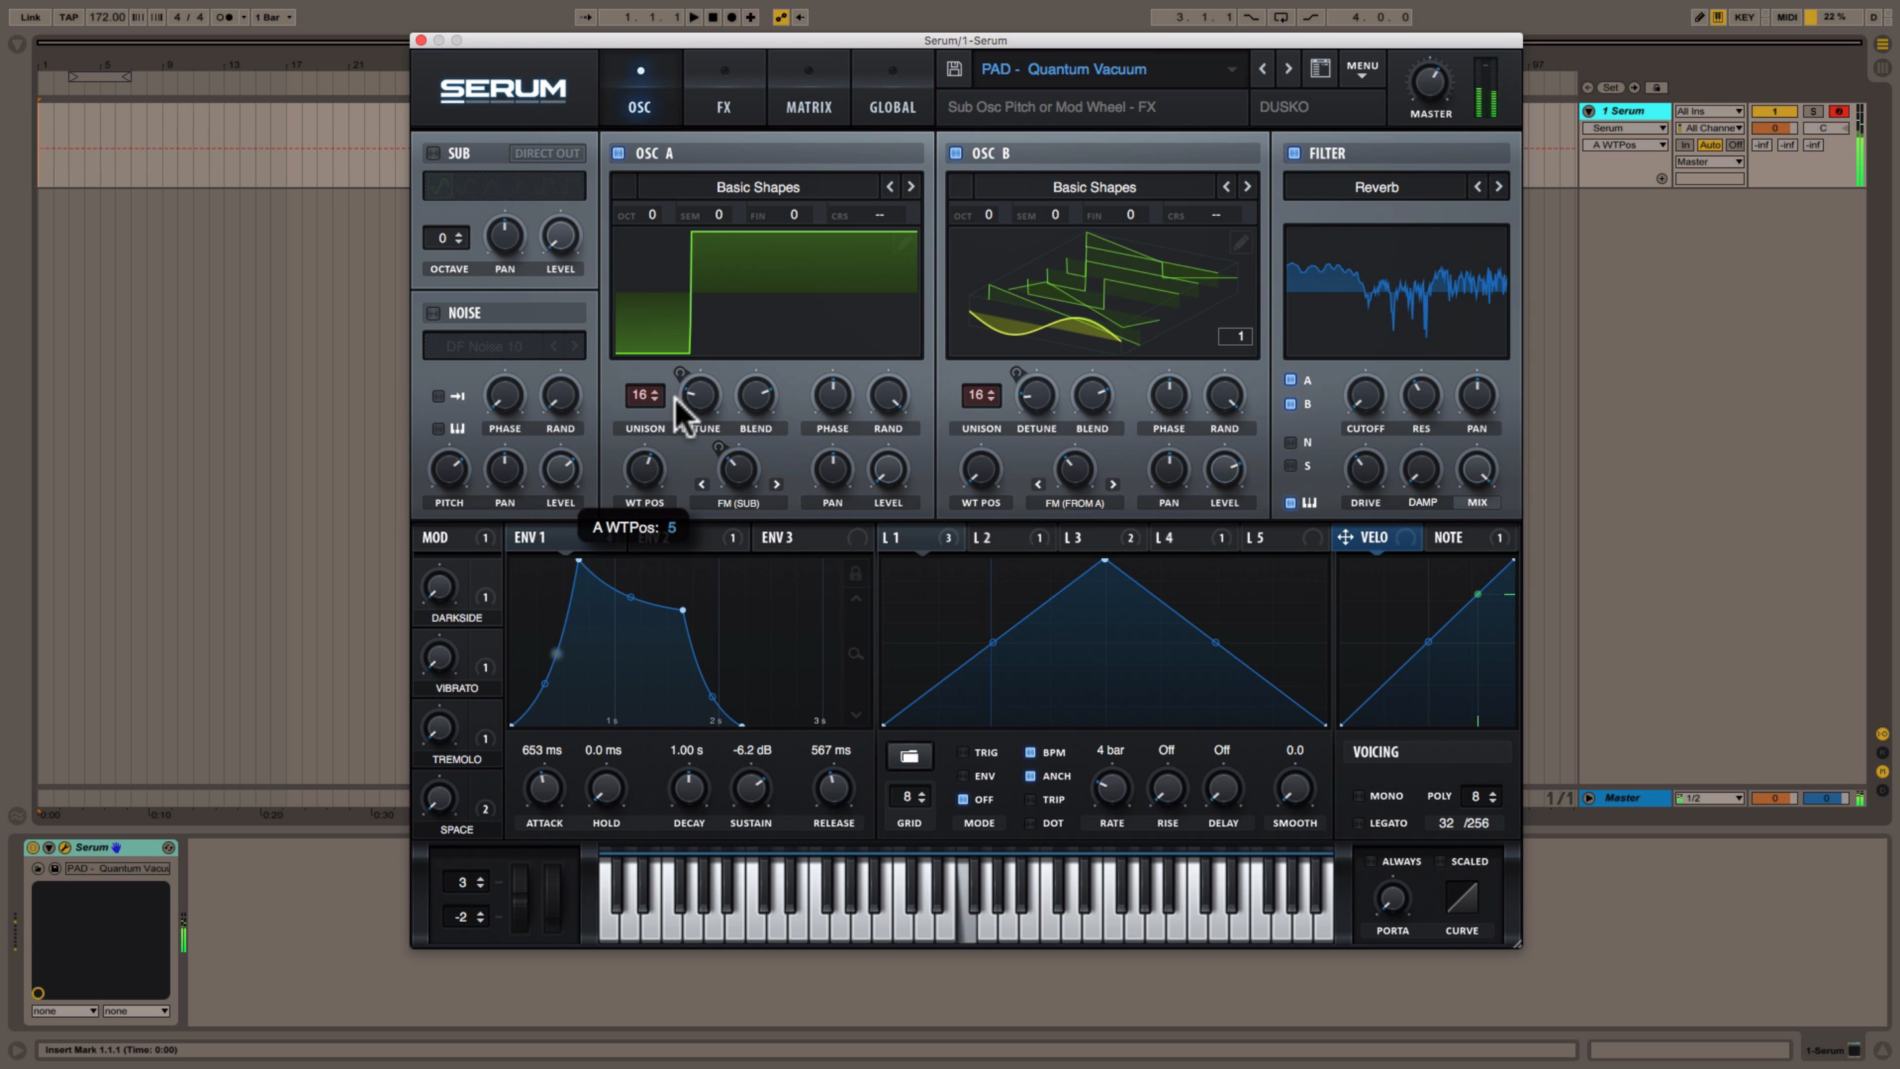 Sound Design Secrets in Serum: How to Use FM Synthesis in